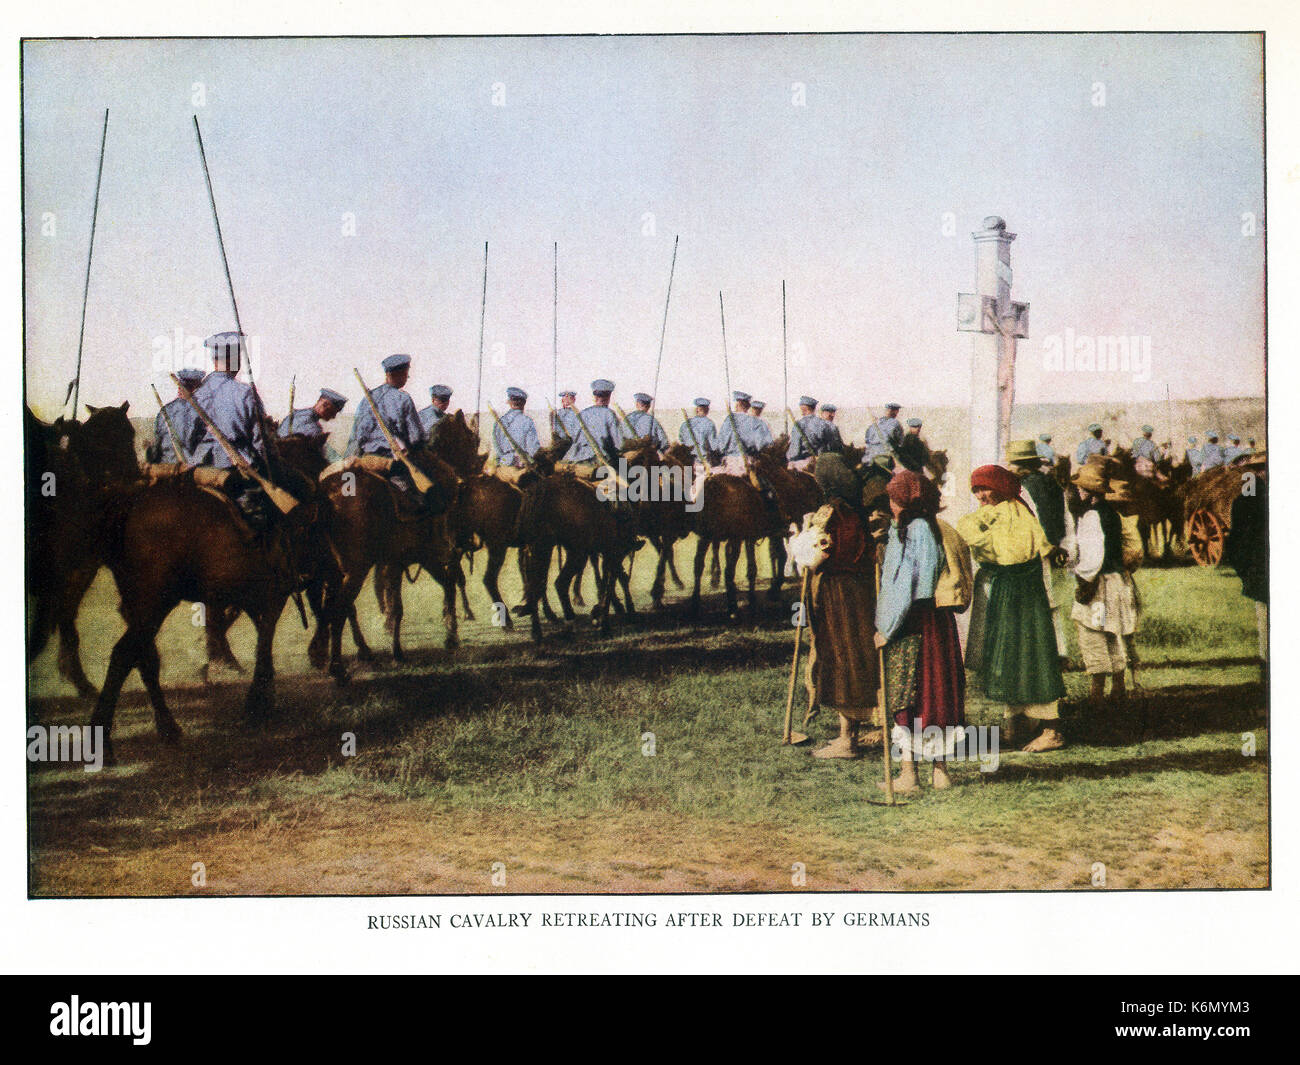 This illustration from World War I shows the Russian cavalry retreating after defeat by Germans. - Stock Image